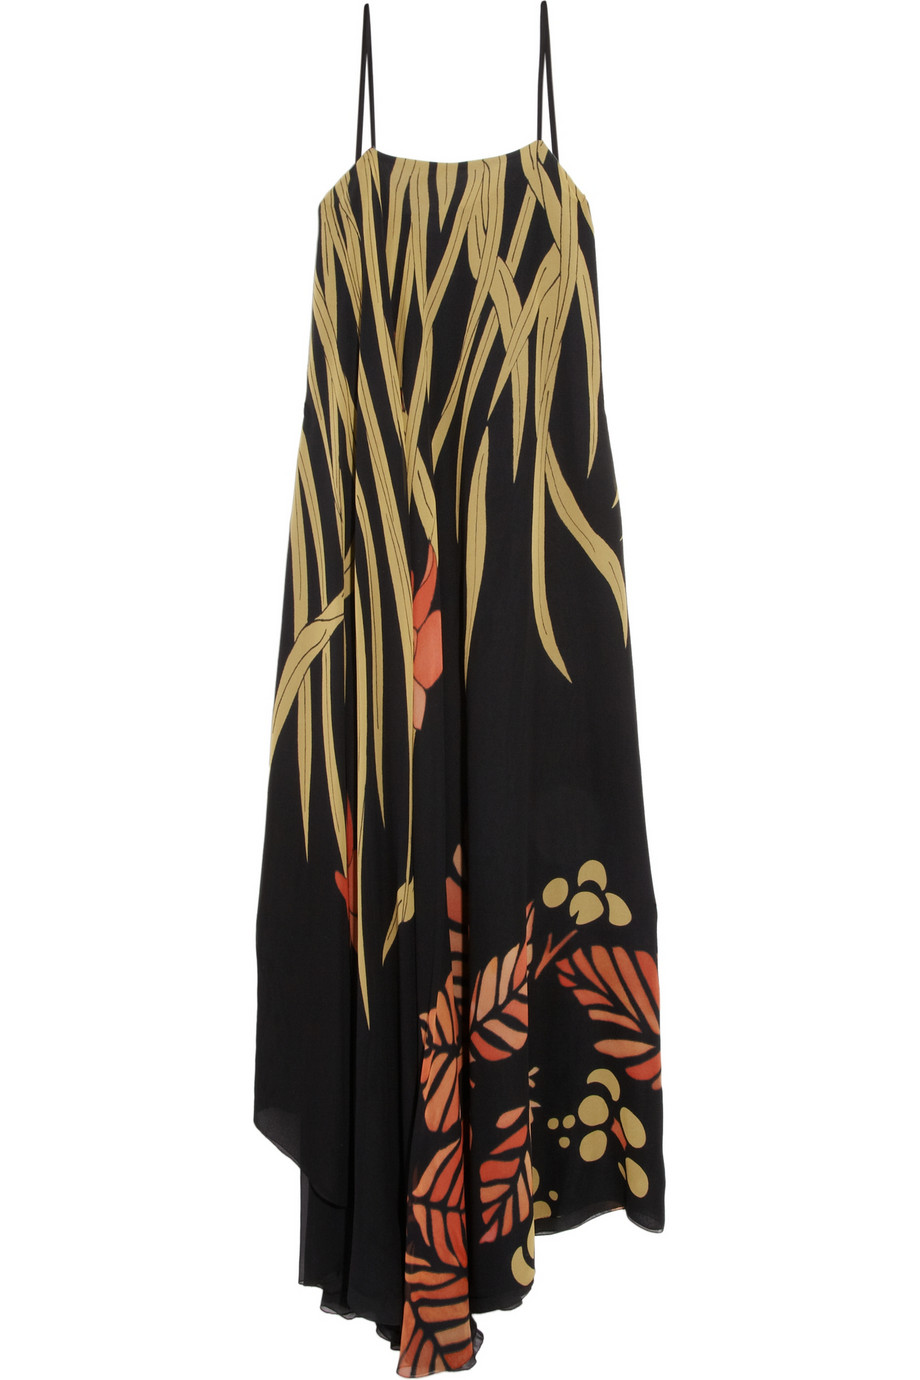 Printed silk maxi dress | Chloé | 75% off | THE OUTNET